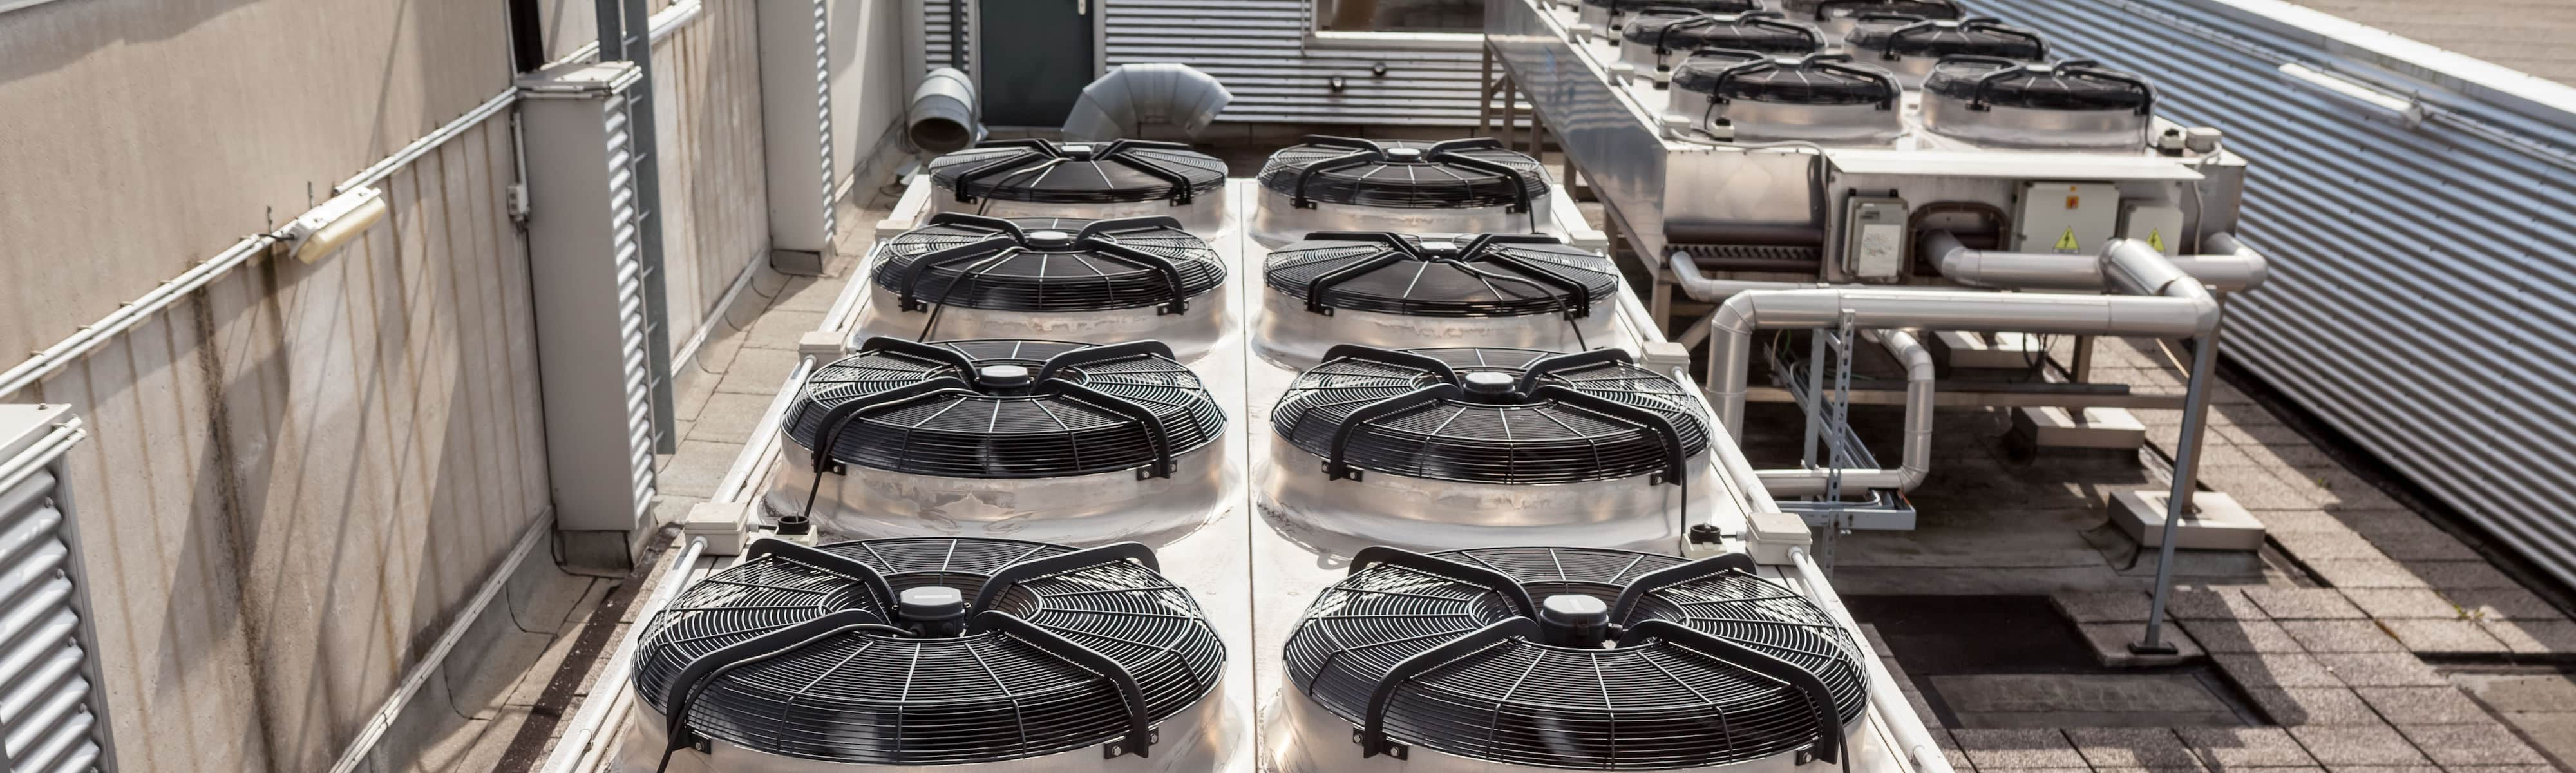 A commercial cooling system on a rooftop.